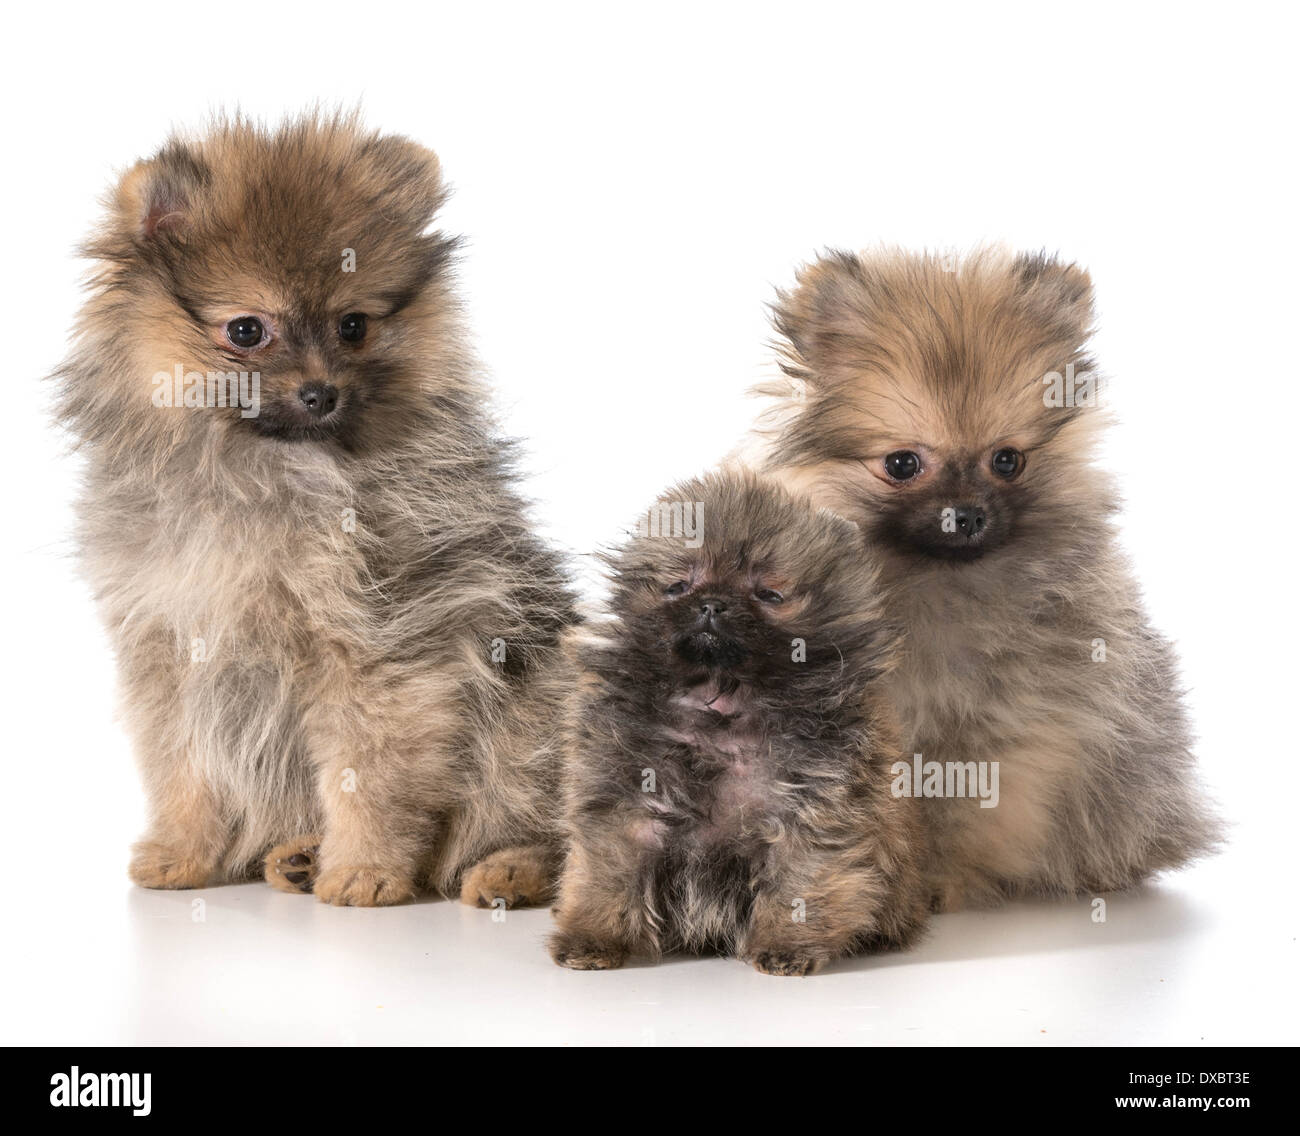 images of pomeranian puppies.html